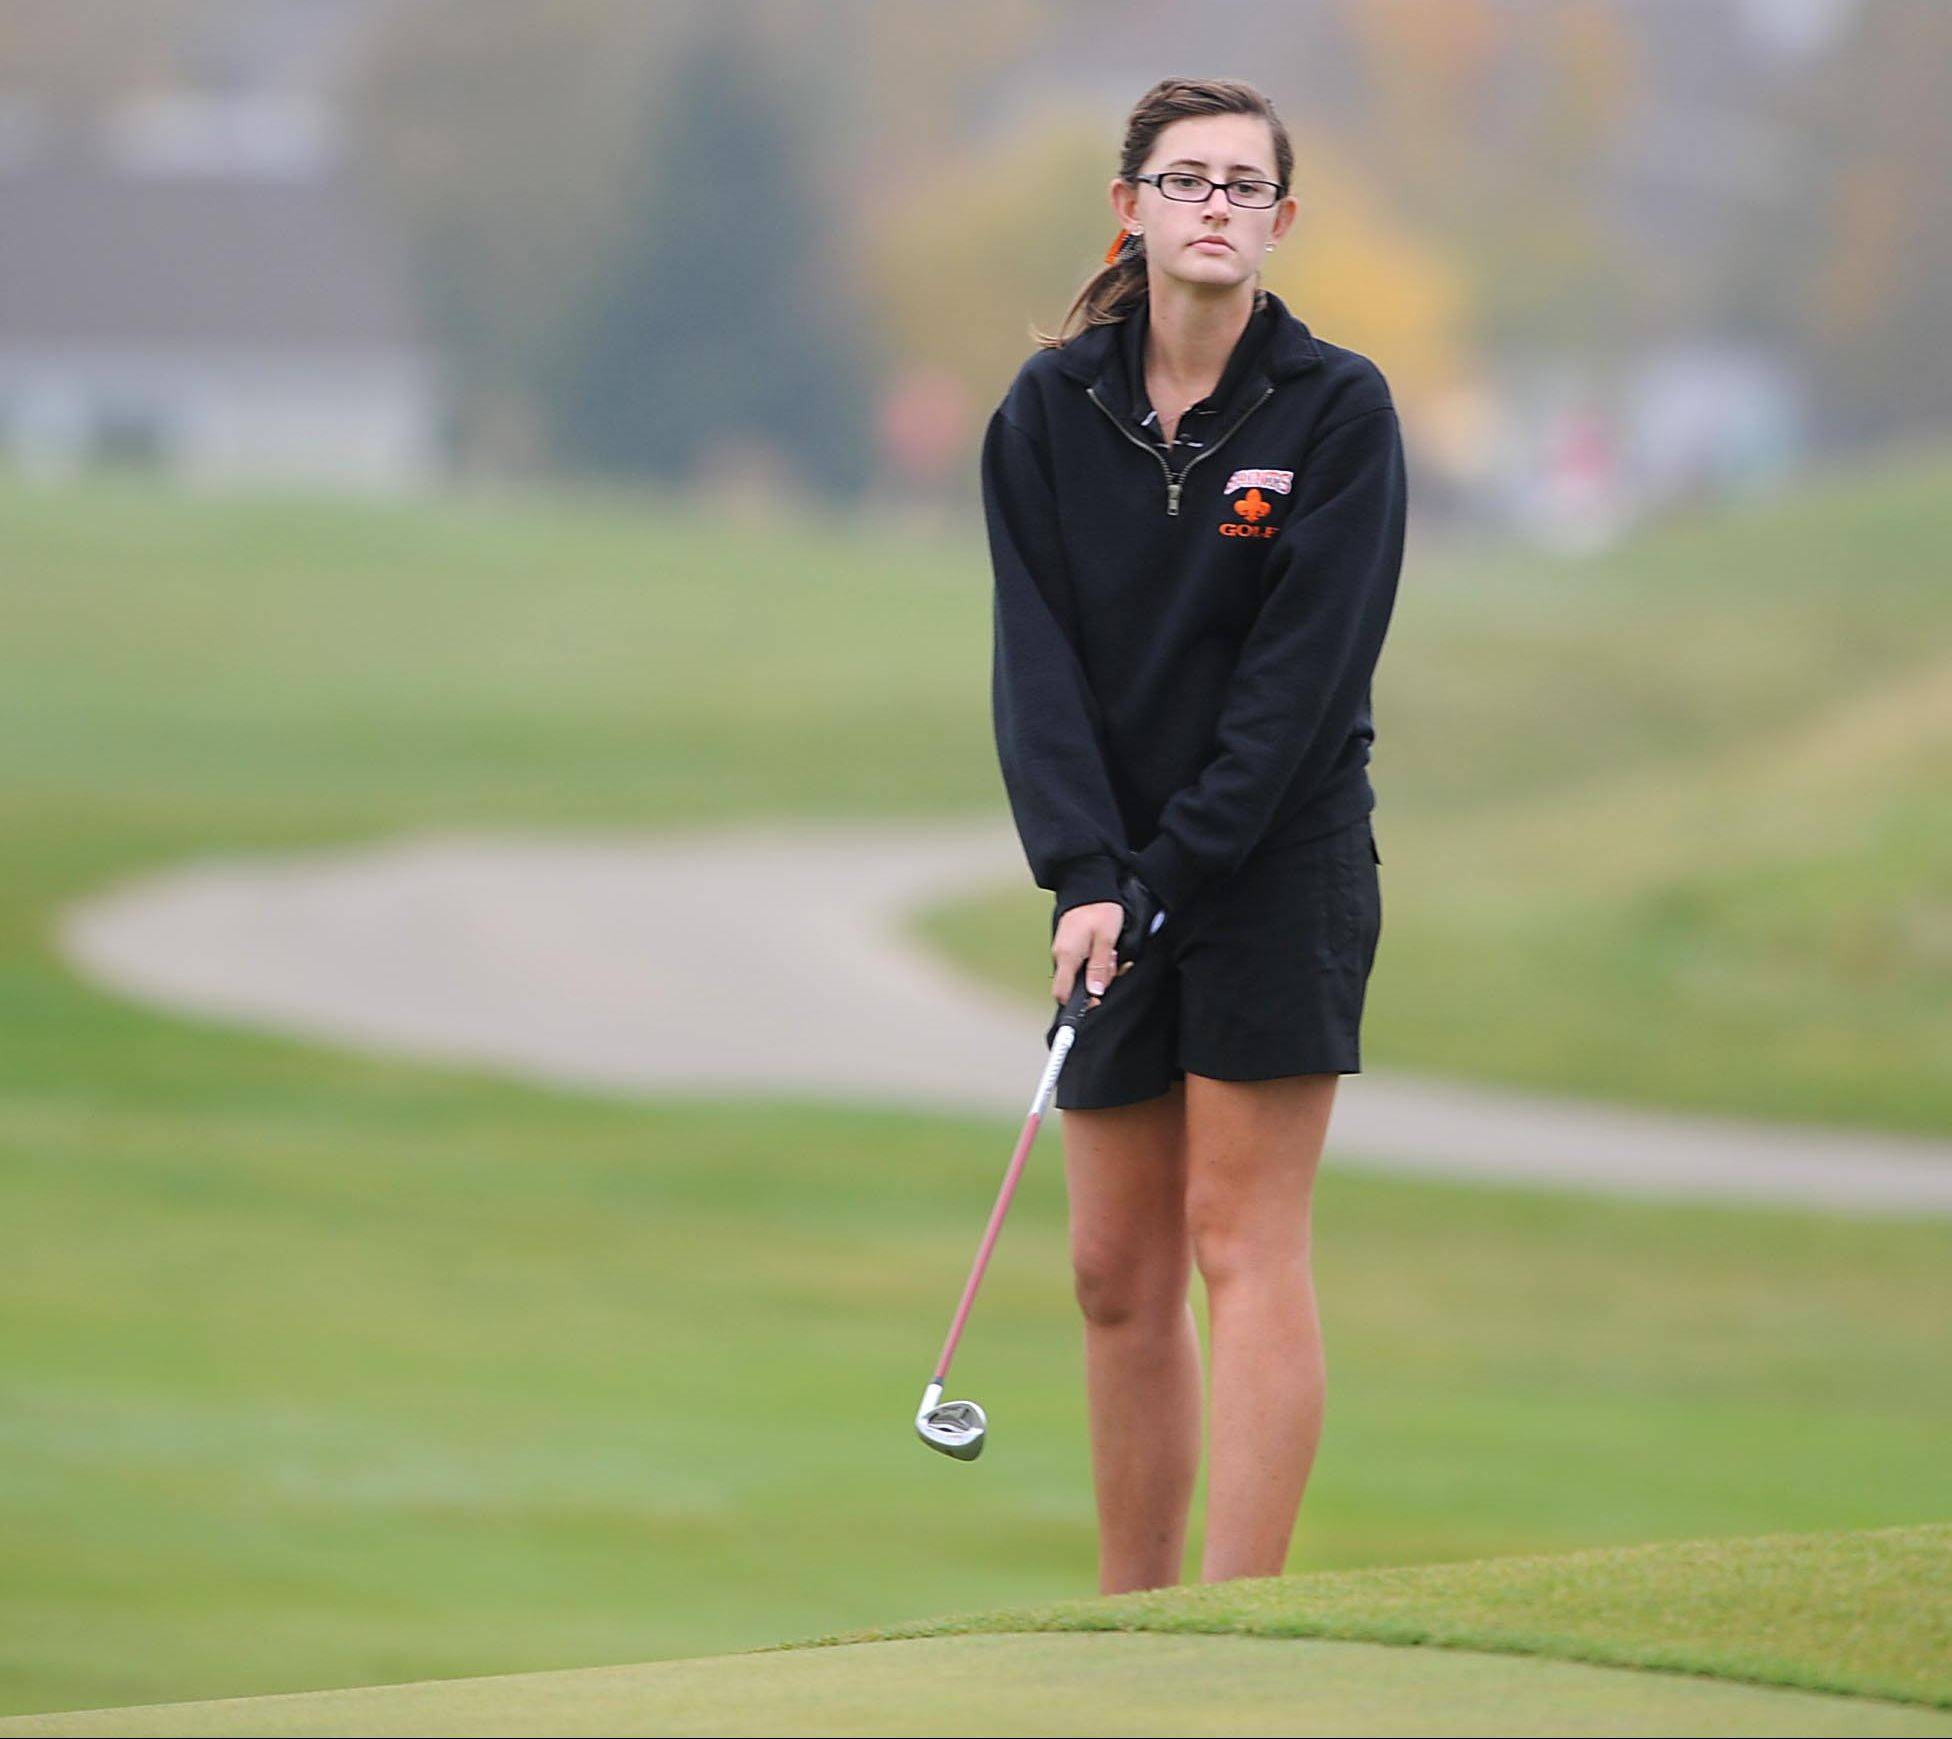 St. Charles East's Darby Crane, above, and St. Charles North's Jessica Grill, below, are two of the area's top returning players.